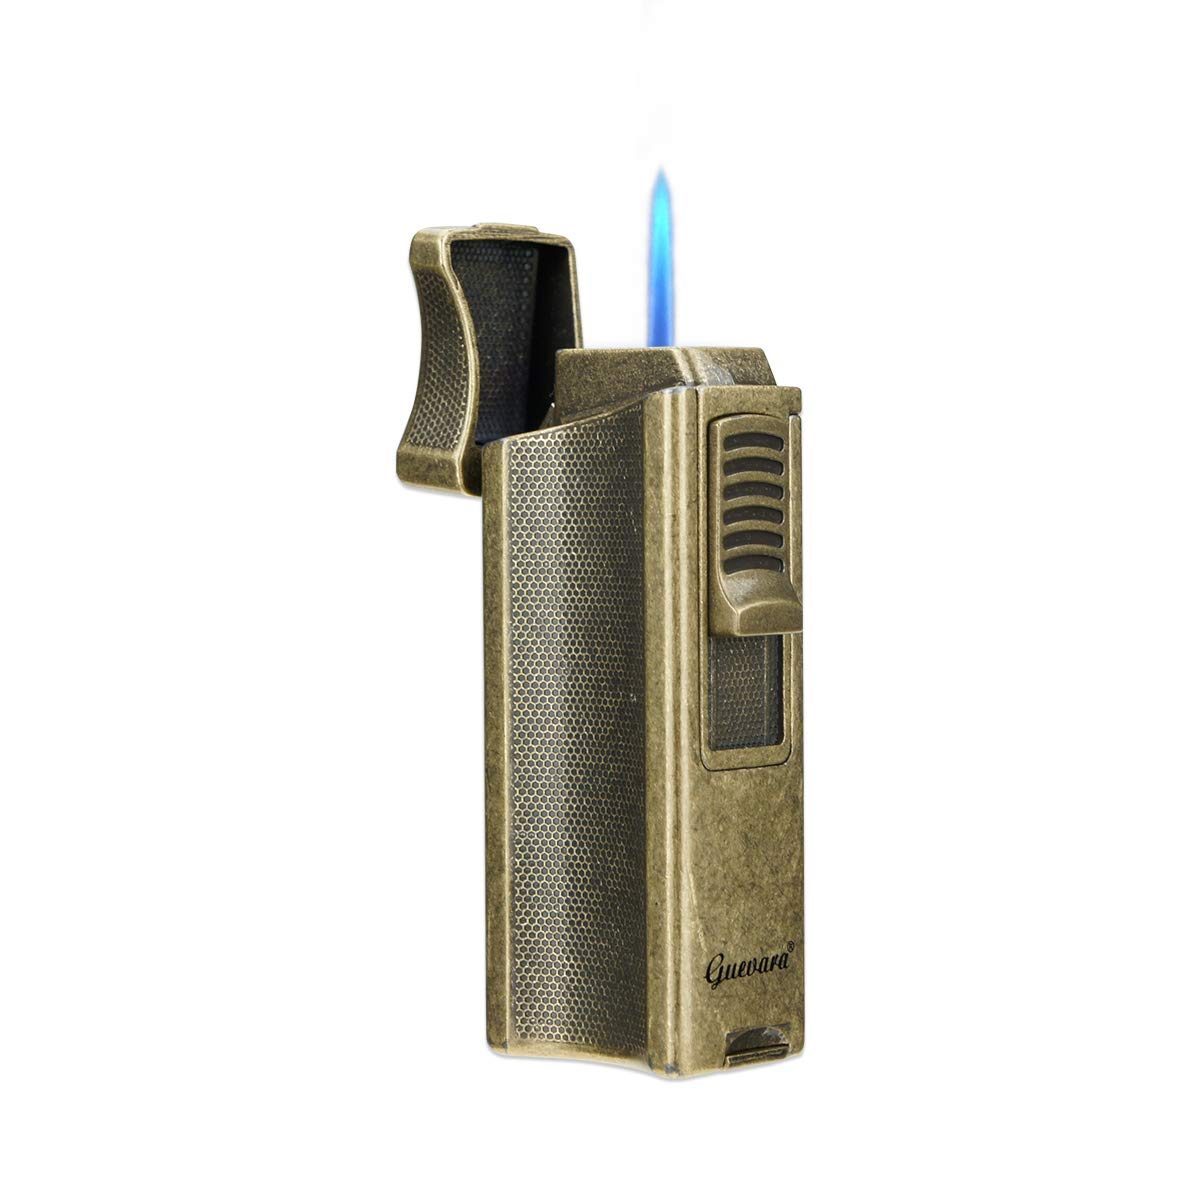 Cigar Lighters Single Torch High Quality Best Cigar Lighter with Stand Holder Windproof Butane Refillable Scorch(Without Gas) (Gold)